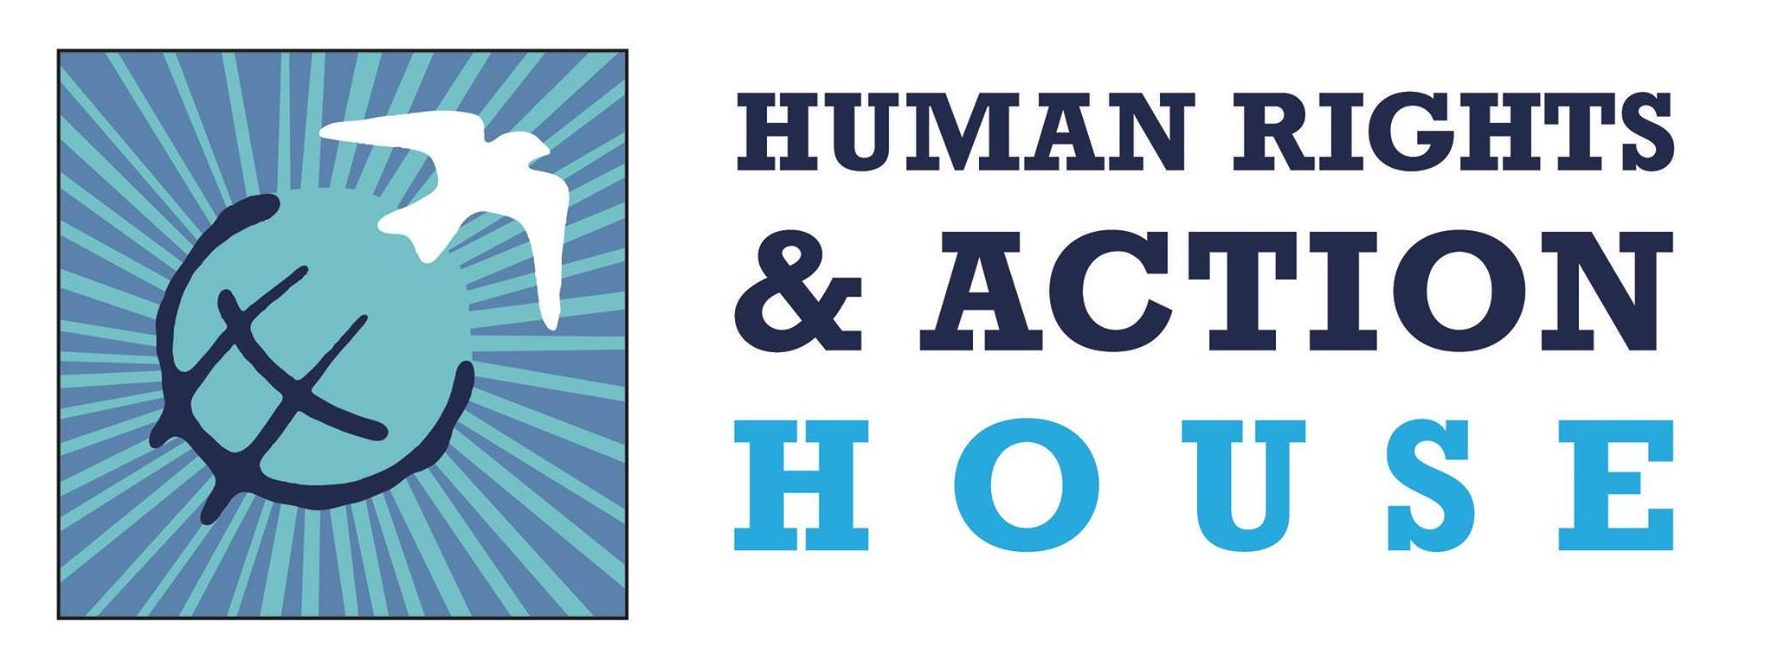 Human rights & Action House